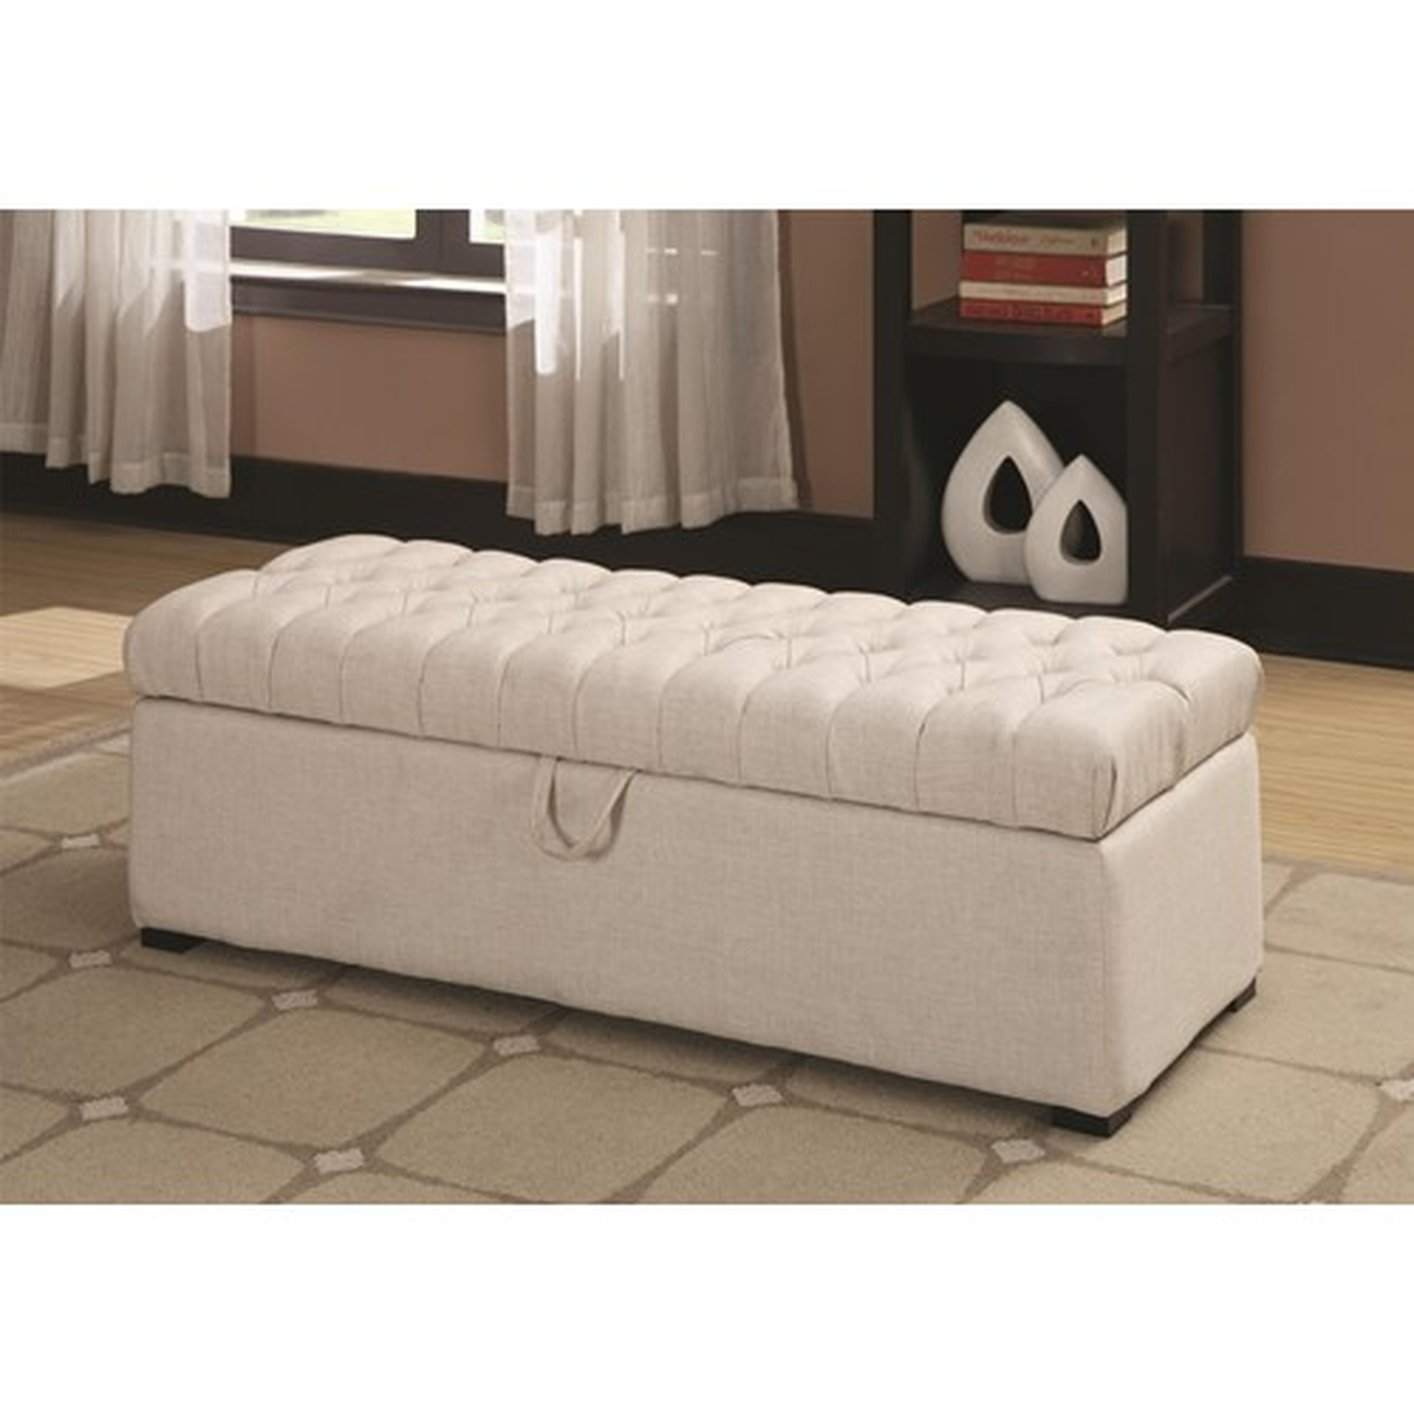 White fabric storage bench steal a sofa furniture outlet for Bedroom furniture 90036